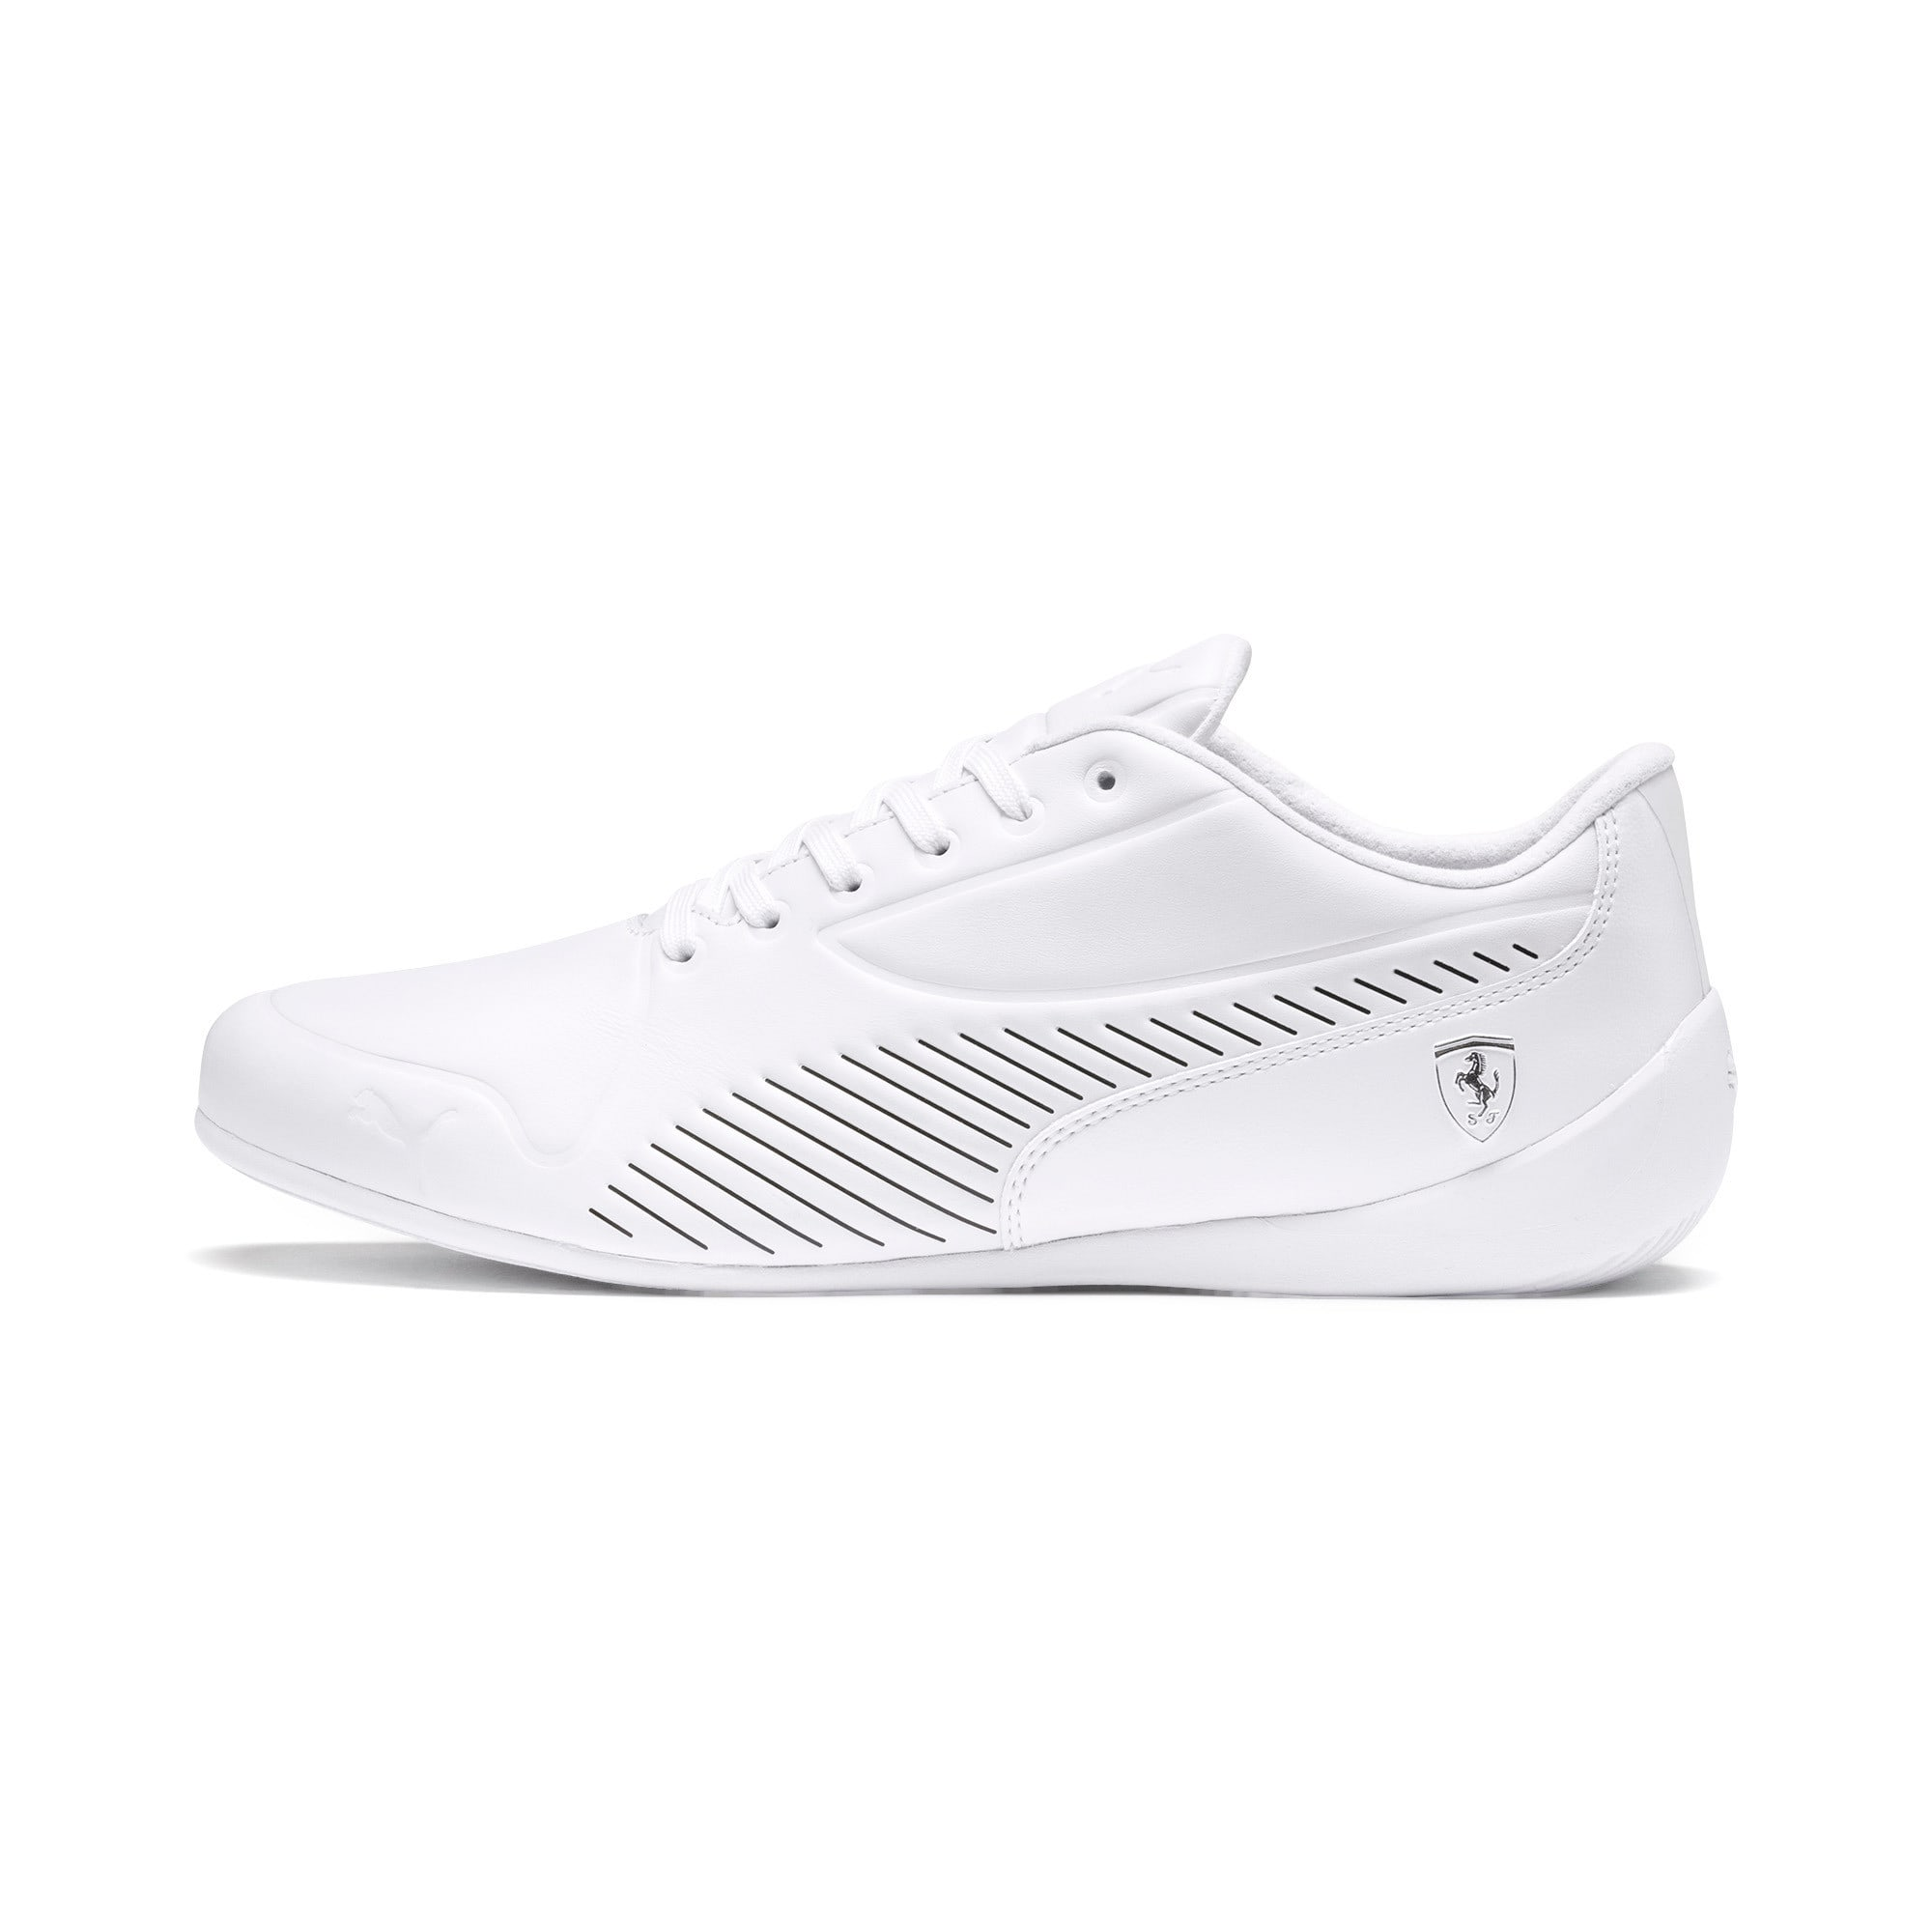 Thumbnail 1 of Scuderia Ferrari Drift Cat 7S Ultra LS Men's Shoes, Puma White-Pastel Parchment, medium